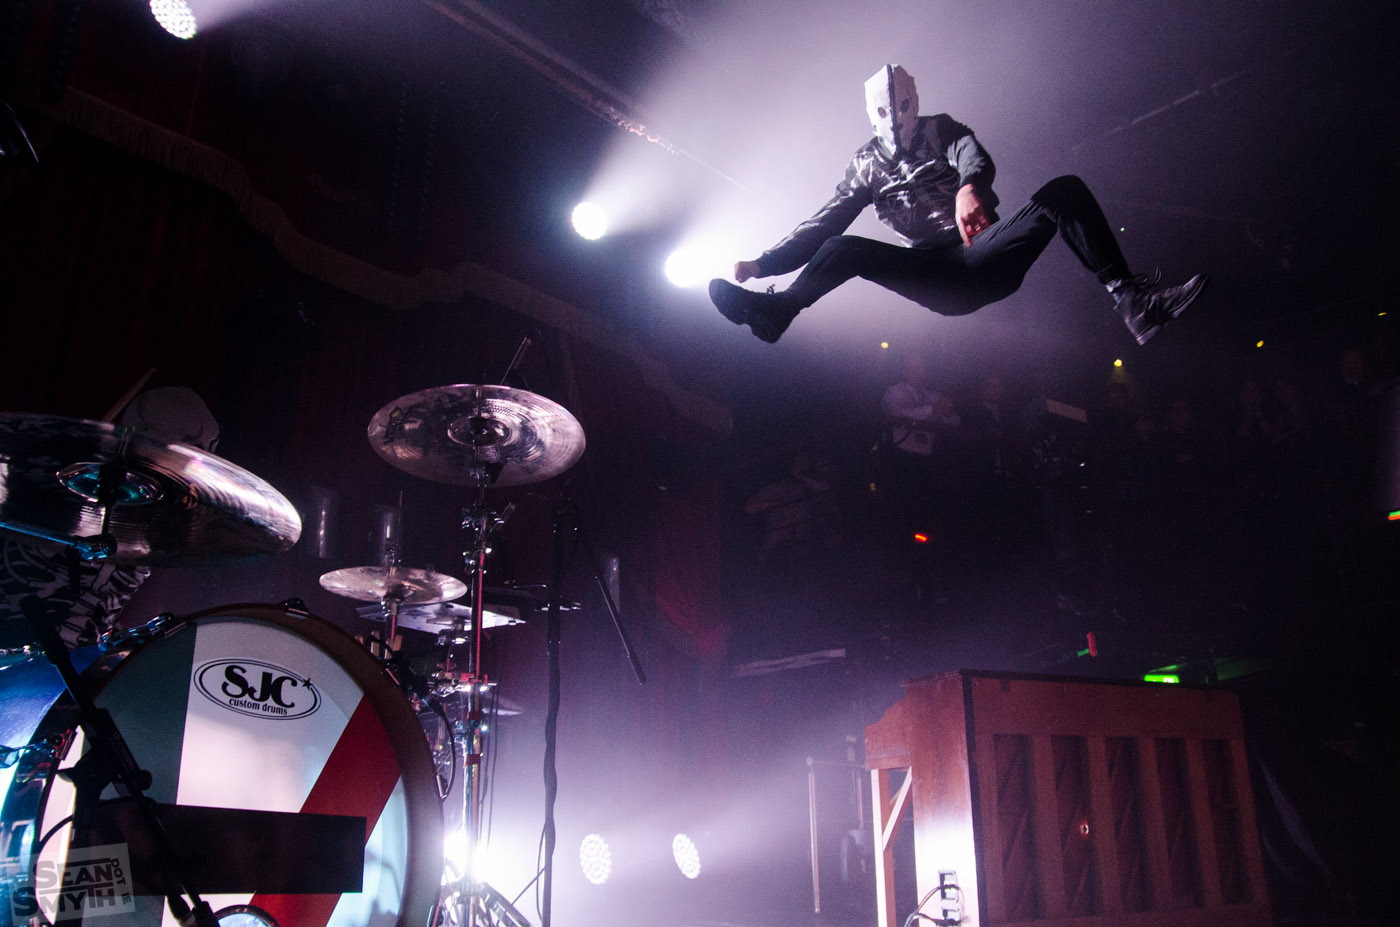 twenty-one-pilots-at-the-academy-by-sean-smyth-16-11-14-28-of-41_15806815165_o